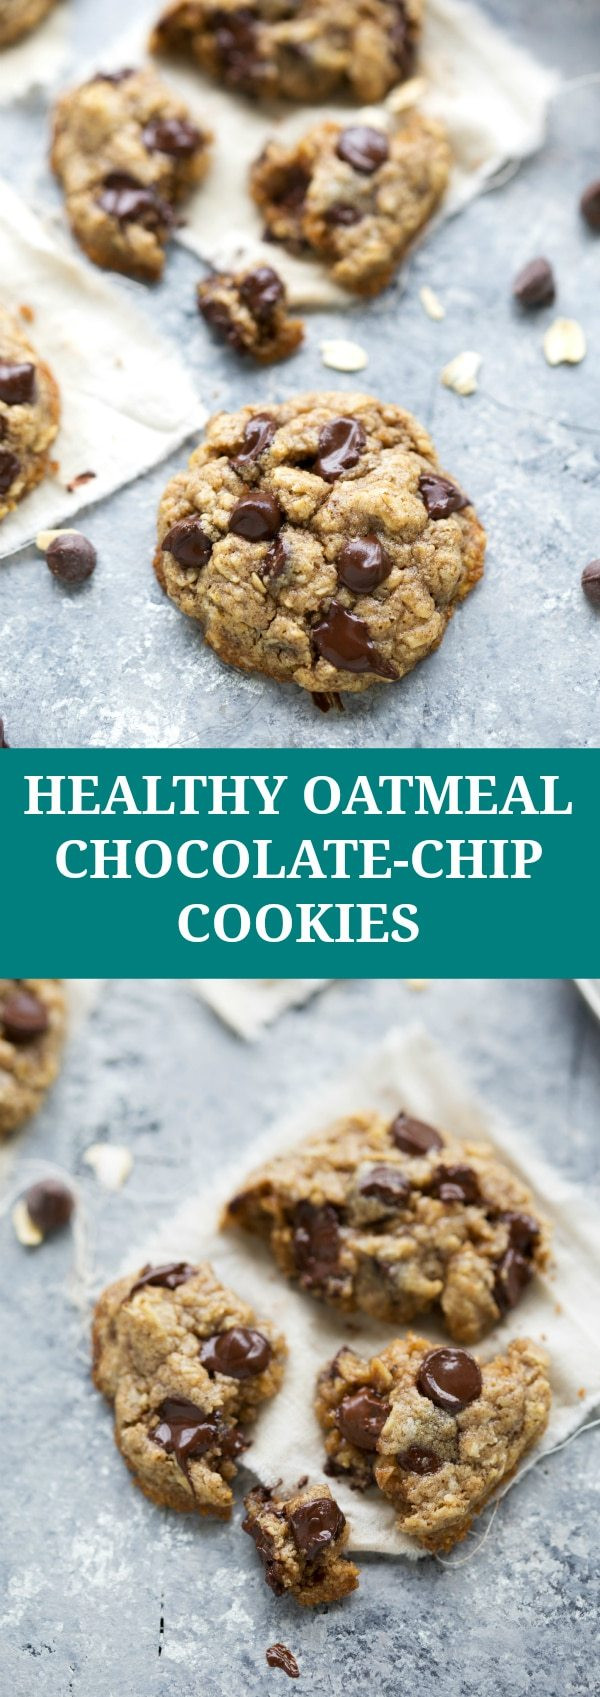 Choc Chip Oatmeal Cookies Healthy  The BEST healthy oatmeal chocolate chip cookies Chelsea